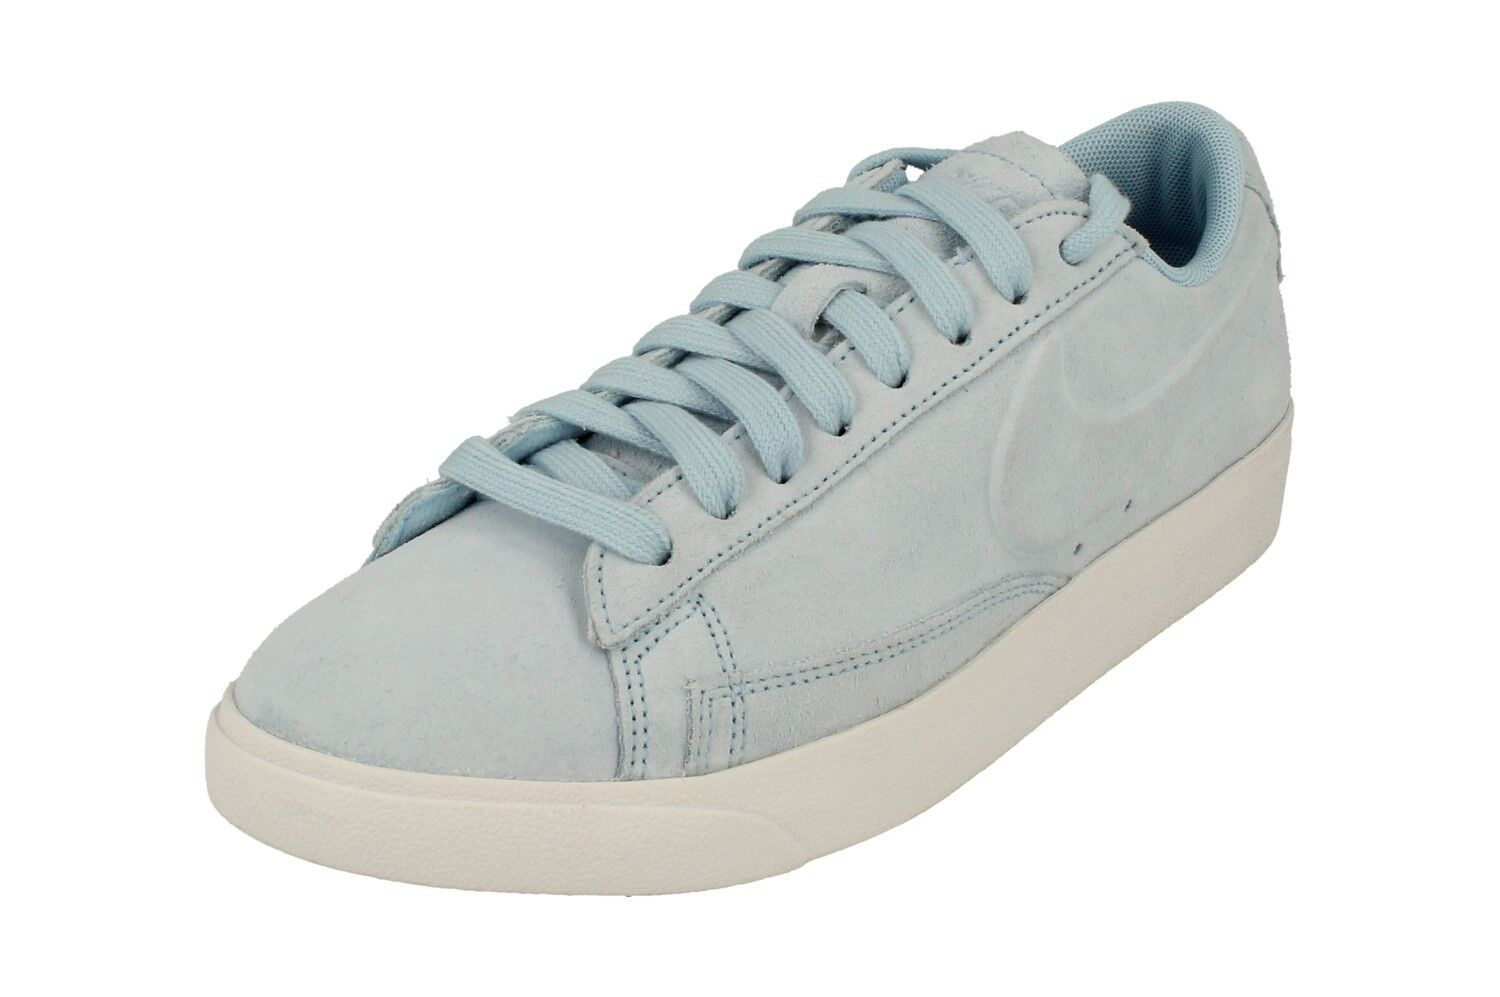 Nike Womens Blazer Low Sd Trainers Aa3962 Sneakers Shoes 402